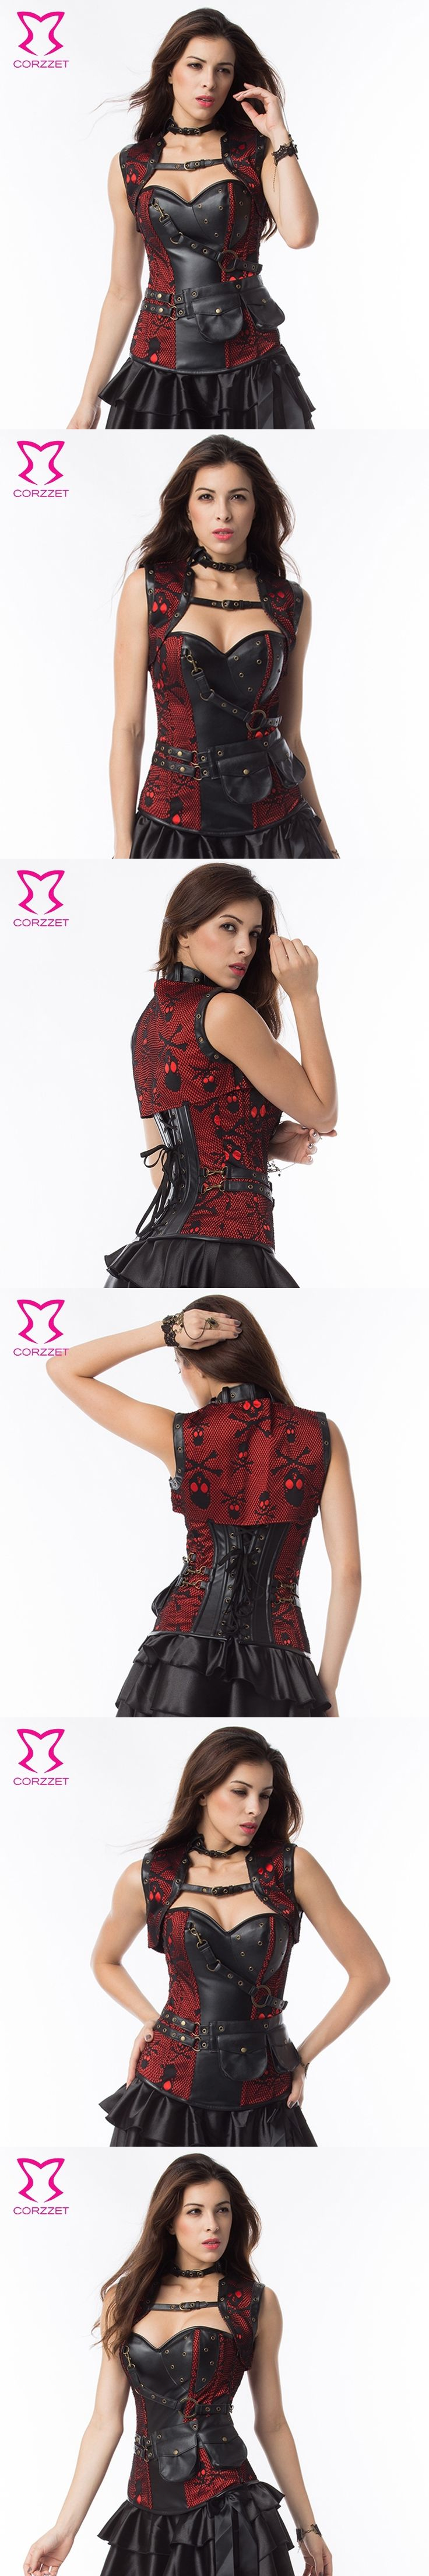 Red/Black Skull Pattern Steel Boned Corset Plus Size Waist slimming Corsets Gothic Espartilhos E Corpetes Steampunk Clothing